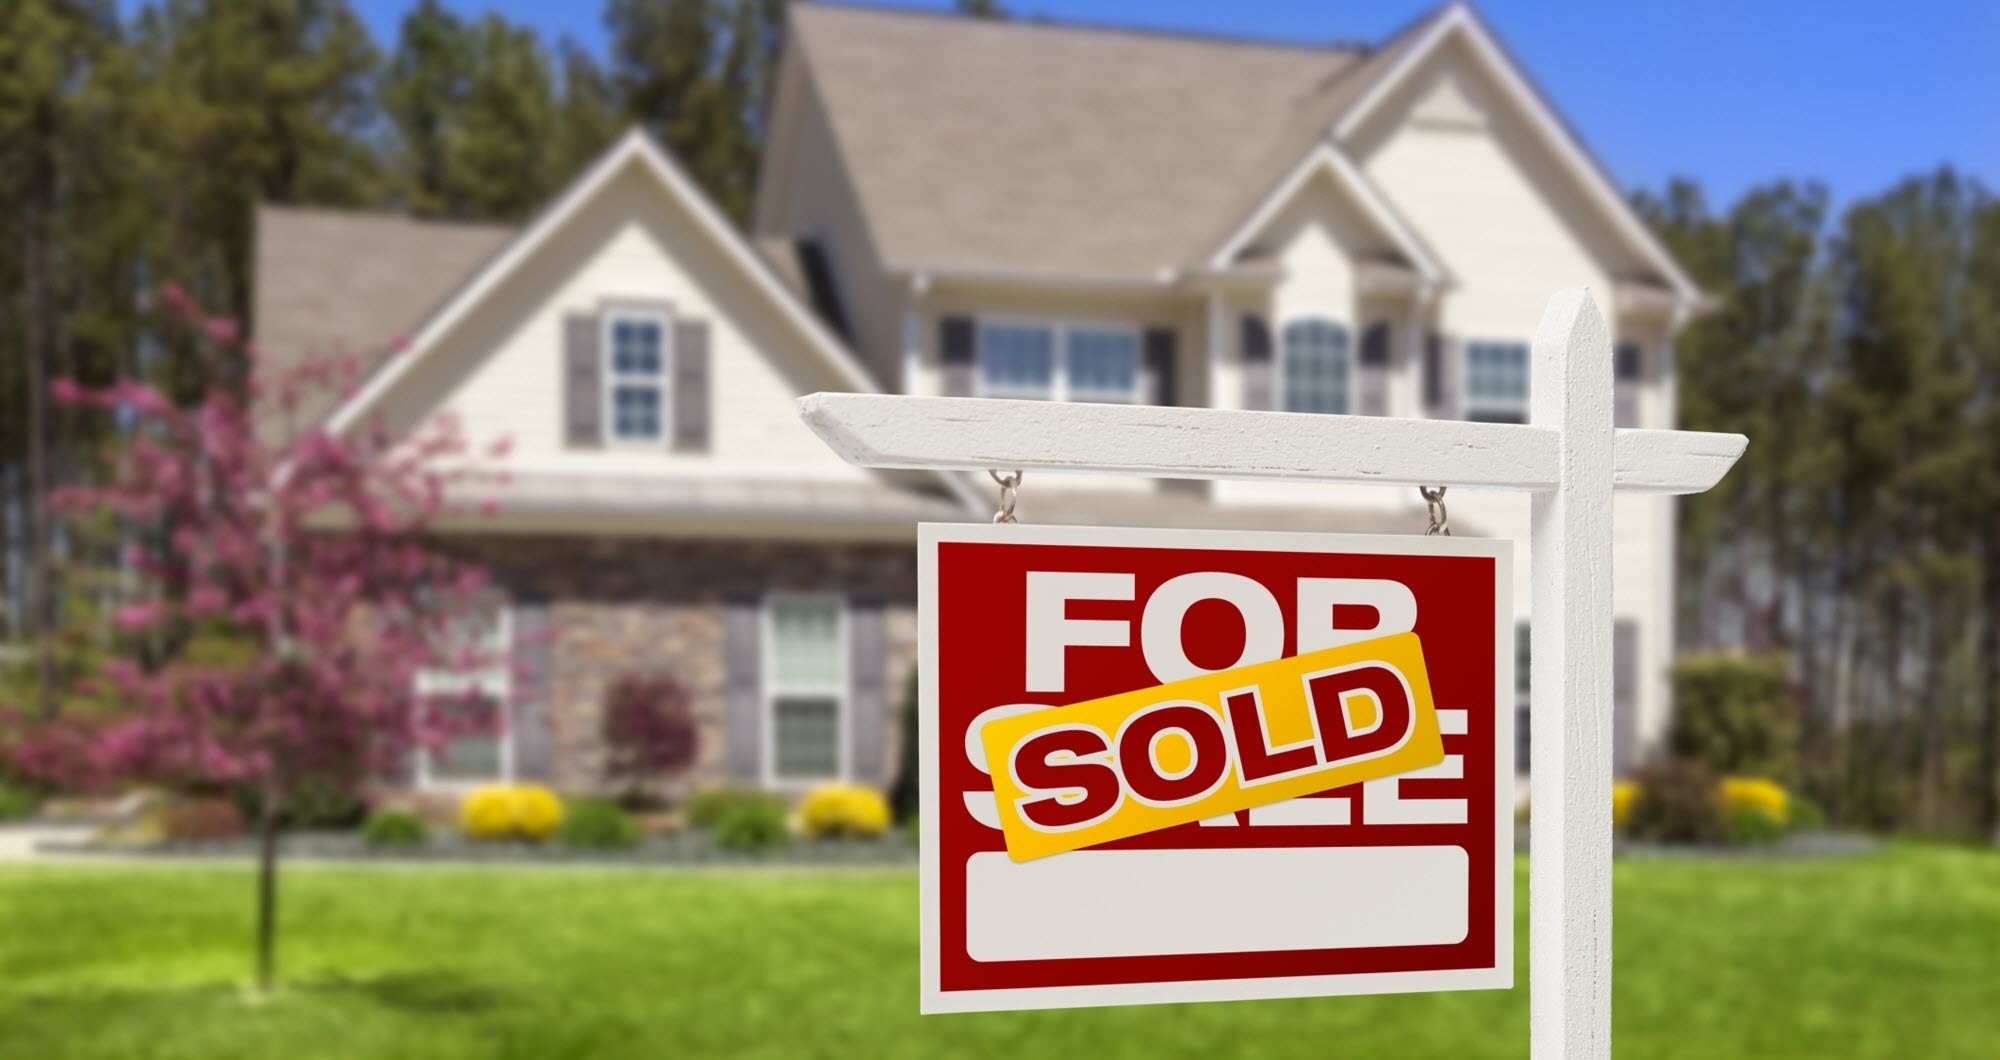 sell old home fast in the Carolinas